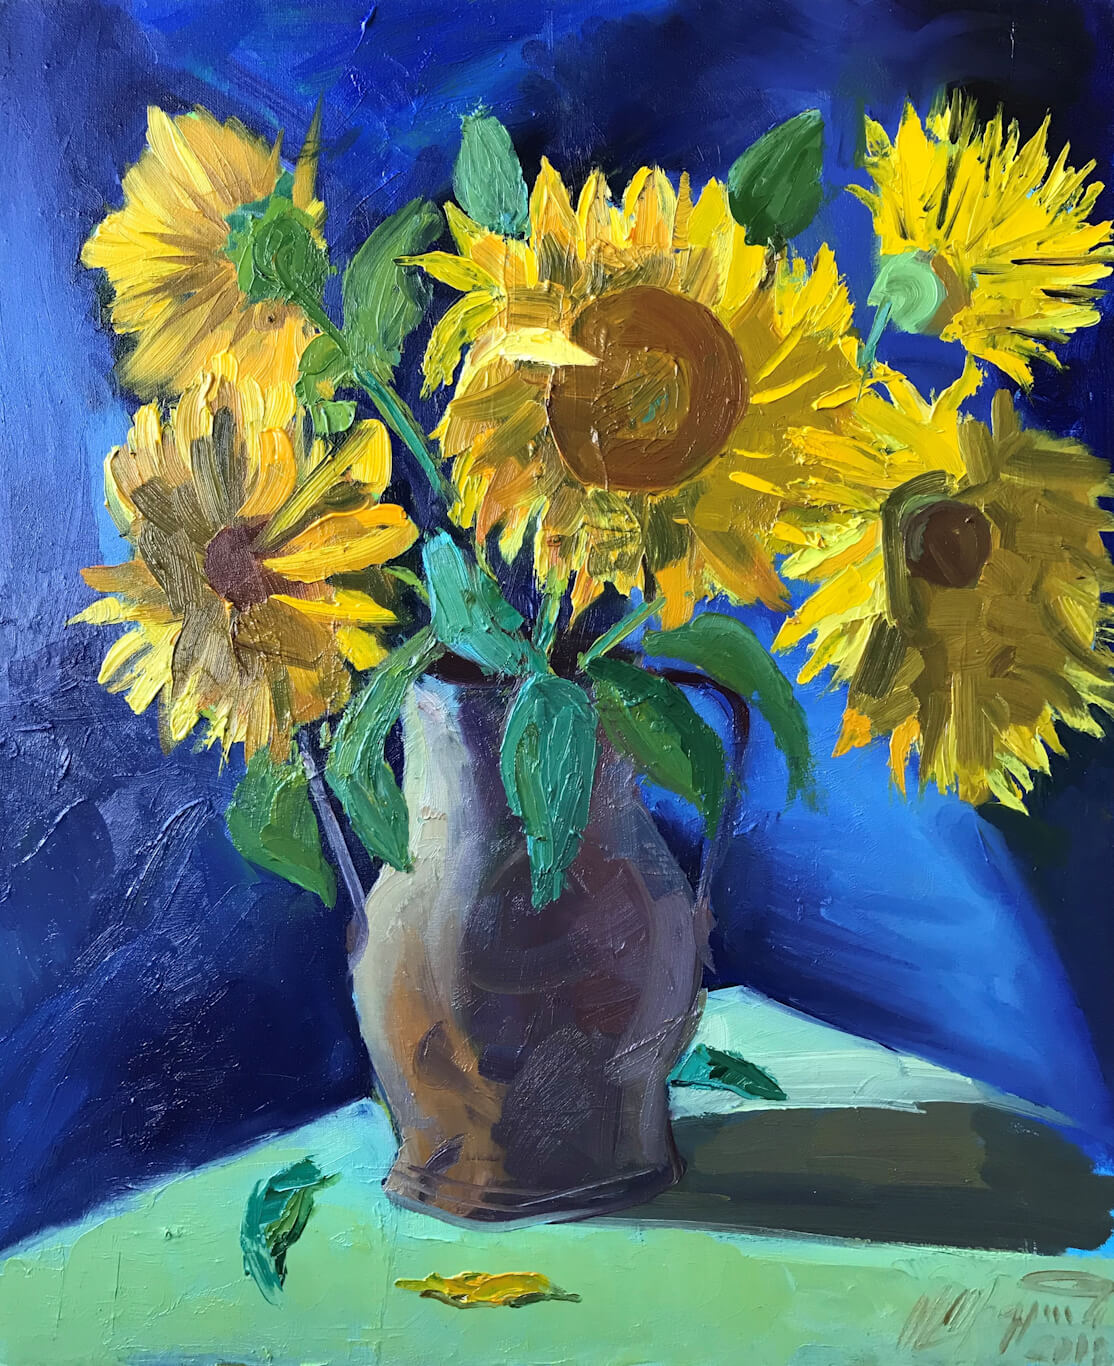 Sunflowers, by Tigran Sargsyan